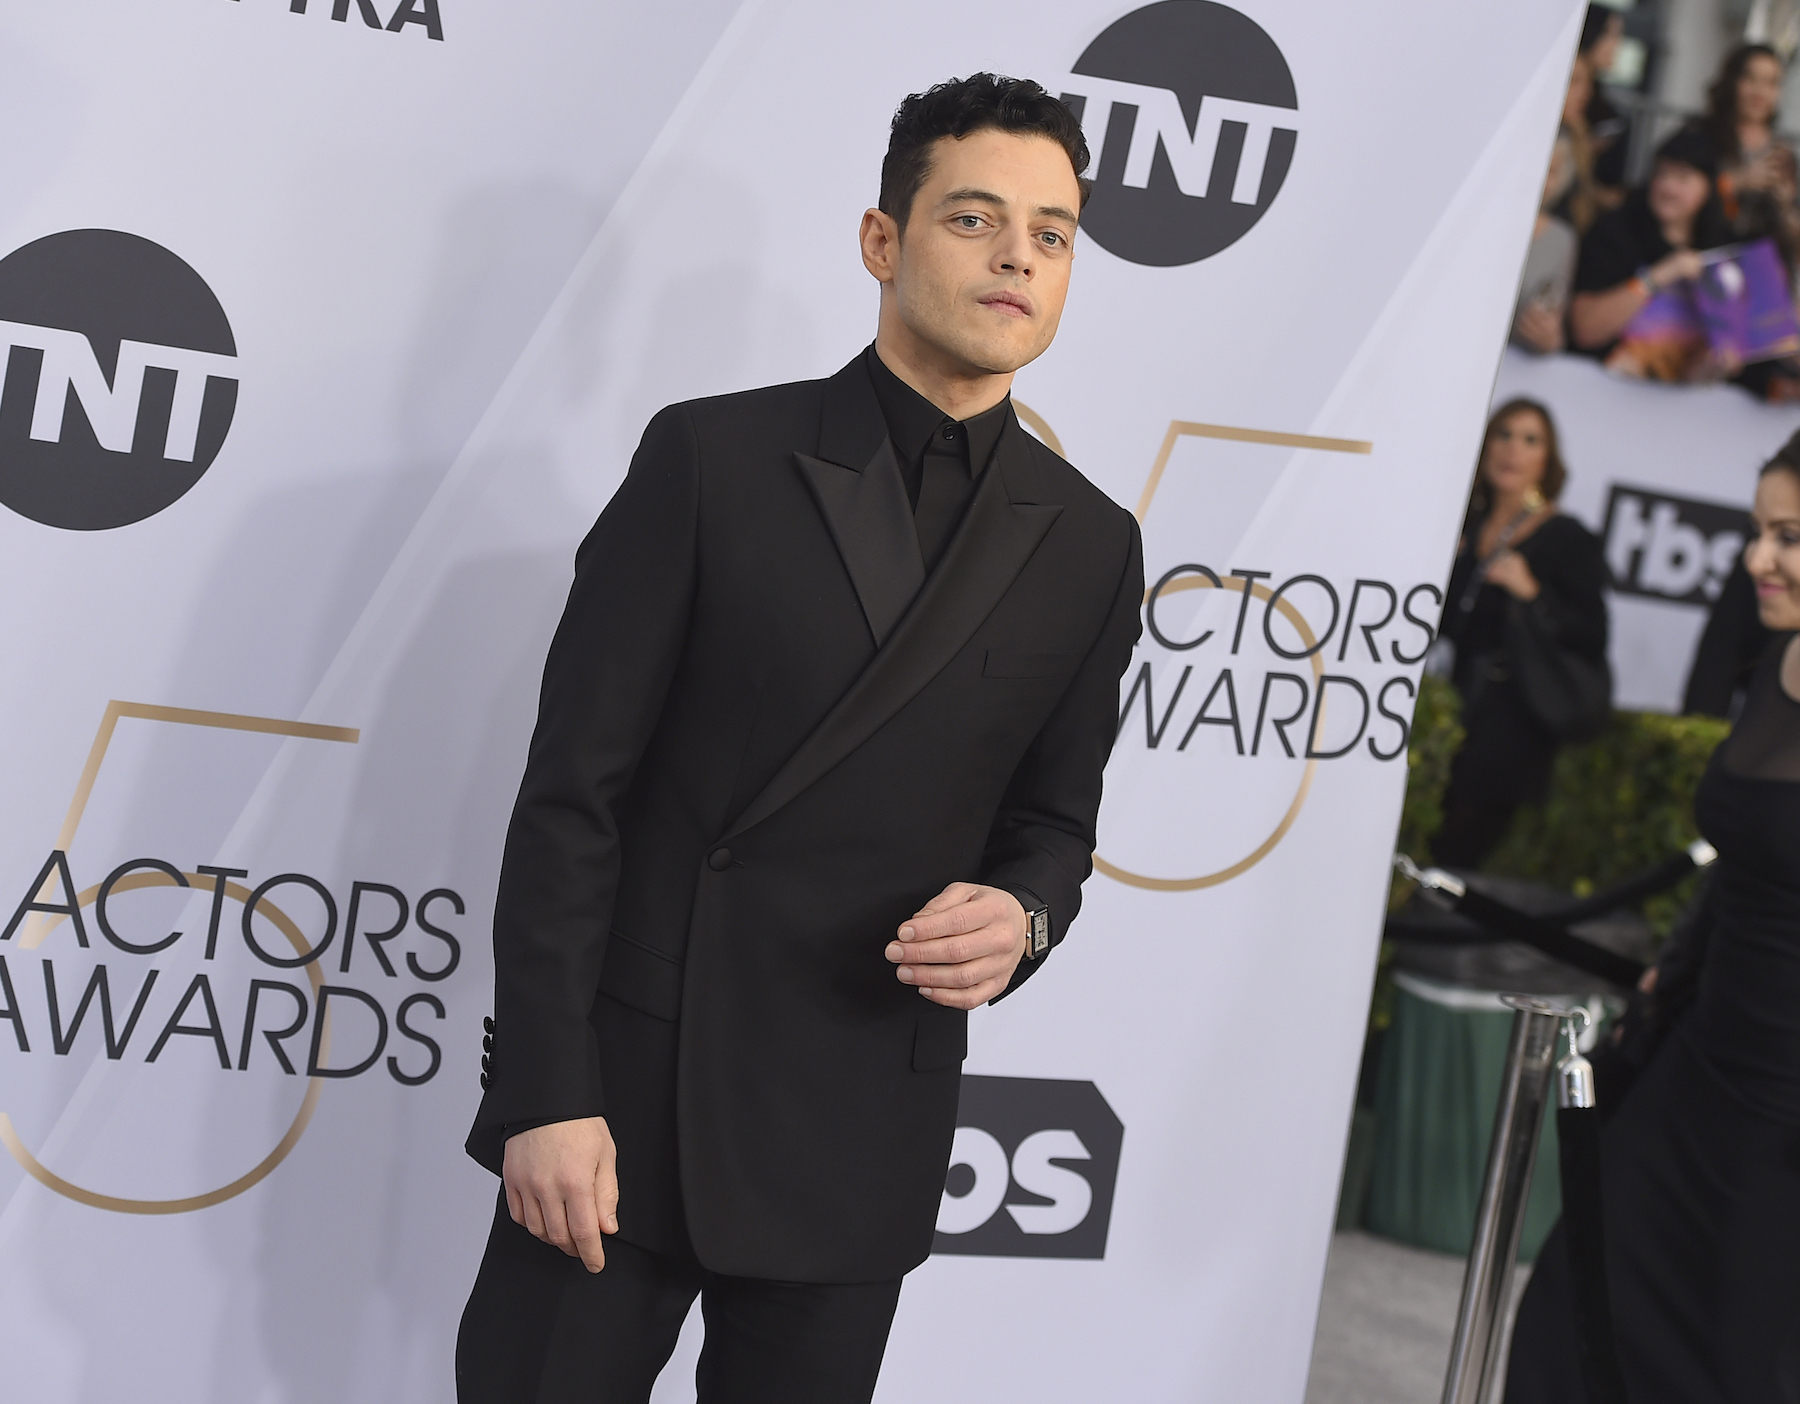 <div class='meta'><div class='origin-logo' data-origin='AP'></div><span class='caption-text' data-credit='Jordan Strauss/Invision/AP'>Rami Malek arrives at the 25th annual Screen Actors Guild Awards at the Shrine Auditorium & Expo Hall on Sunday, Jan. 27, 2019, in Los Angeles. /AP)</span></div>